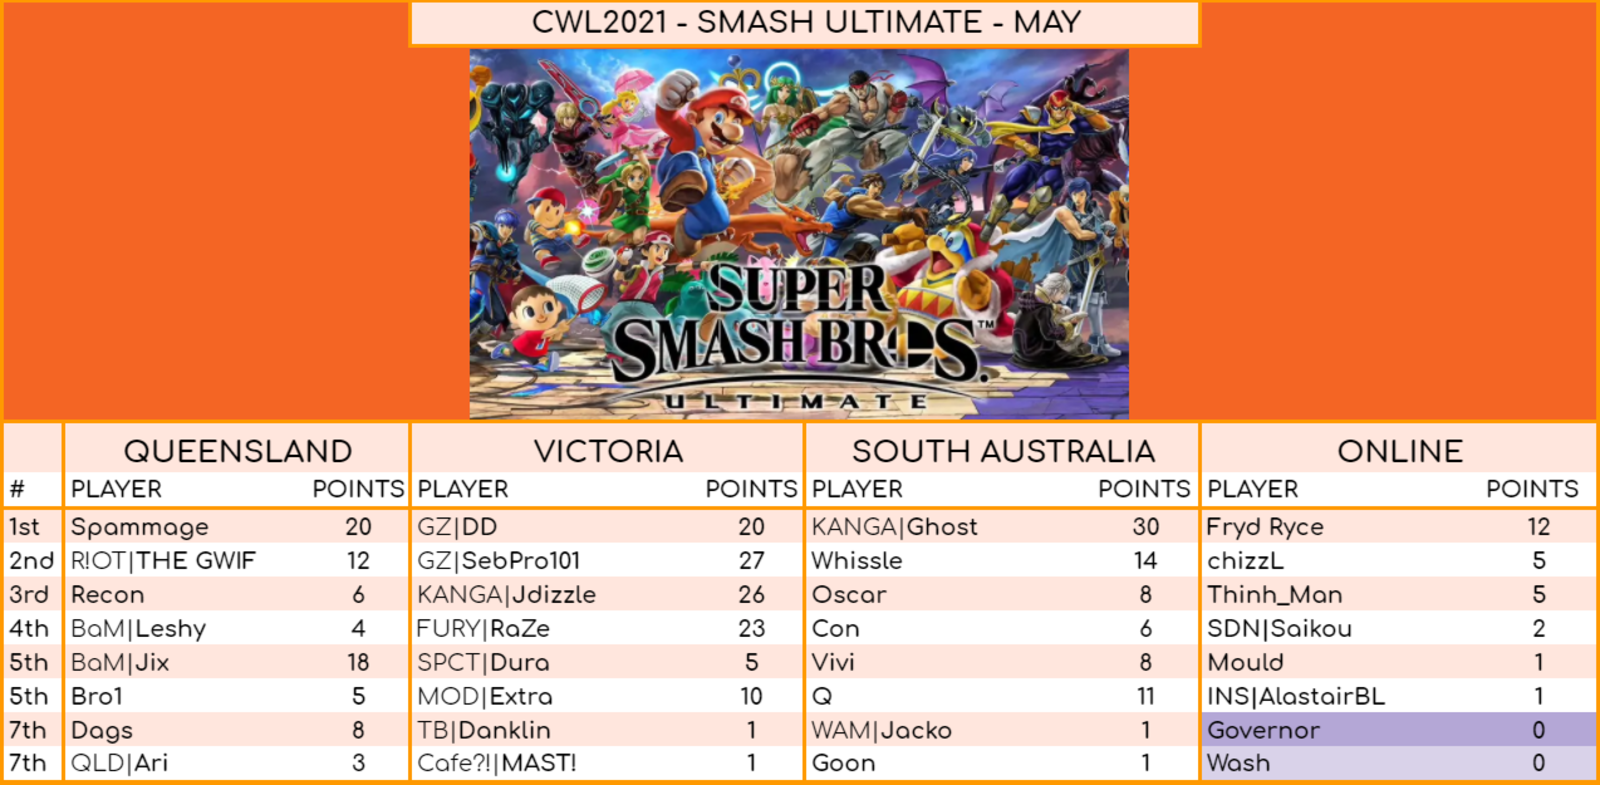 Ultimate results for May